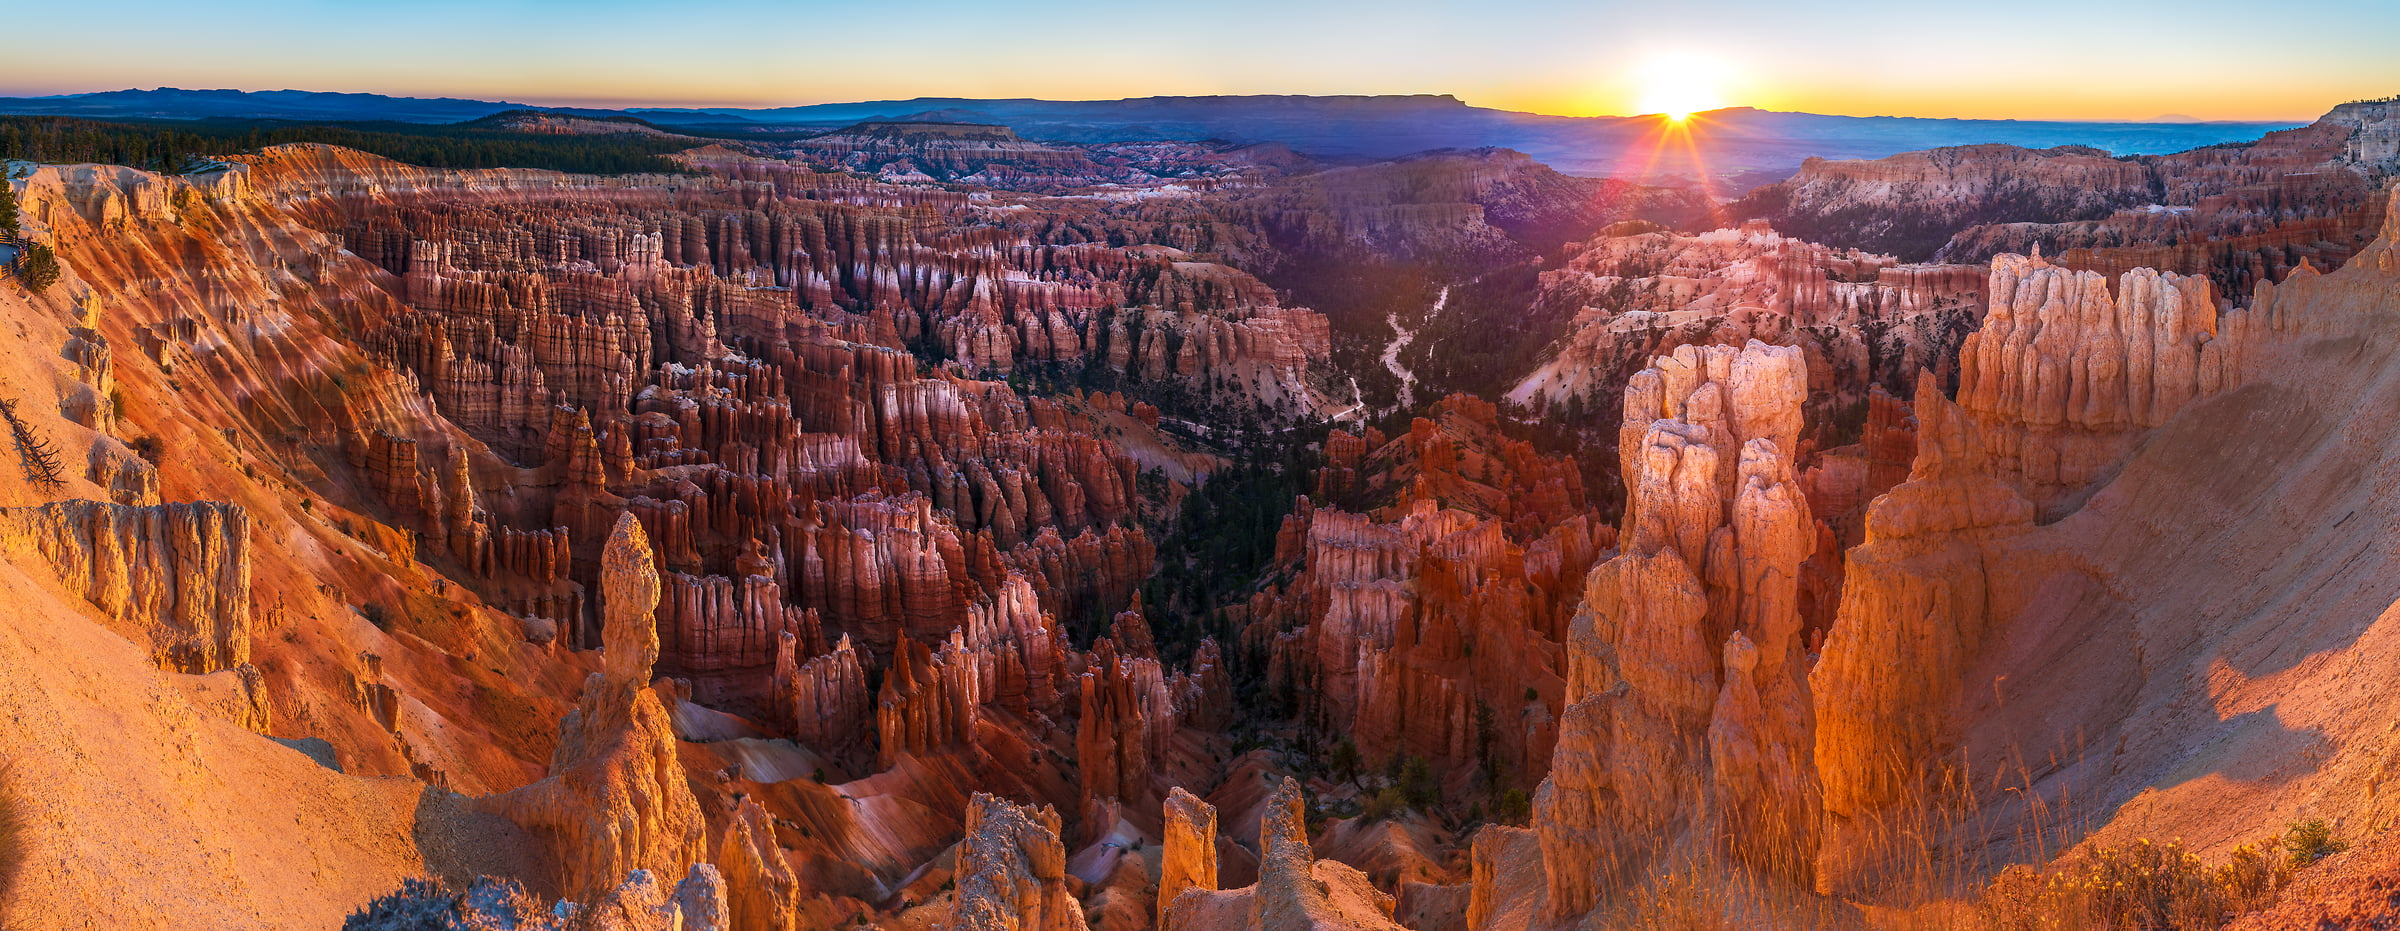 332 megapixels! A very high resolution, large-format VAST photo print of Bryce Canyon at sunrise; landscape photograph created by Jim Tarpo in Bryce Canyon, Utah